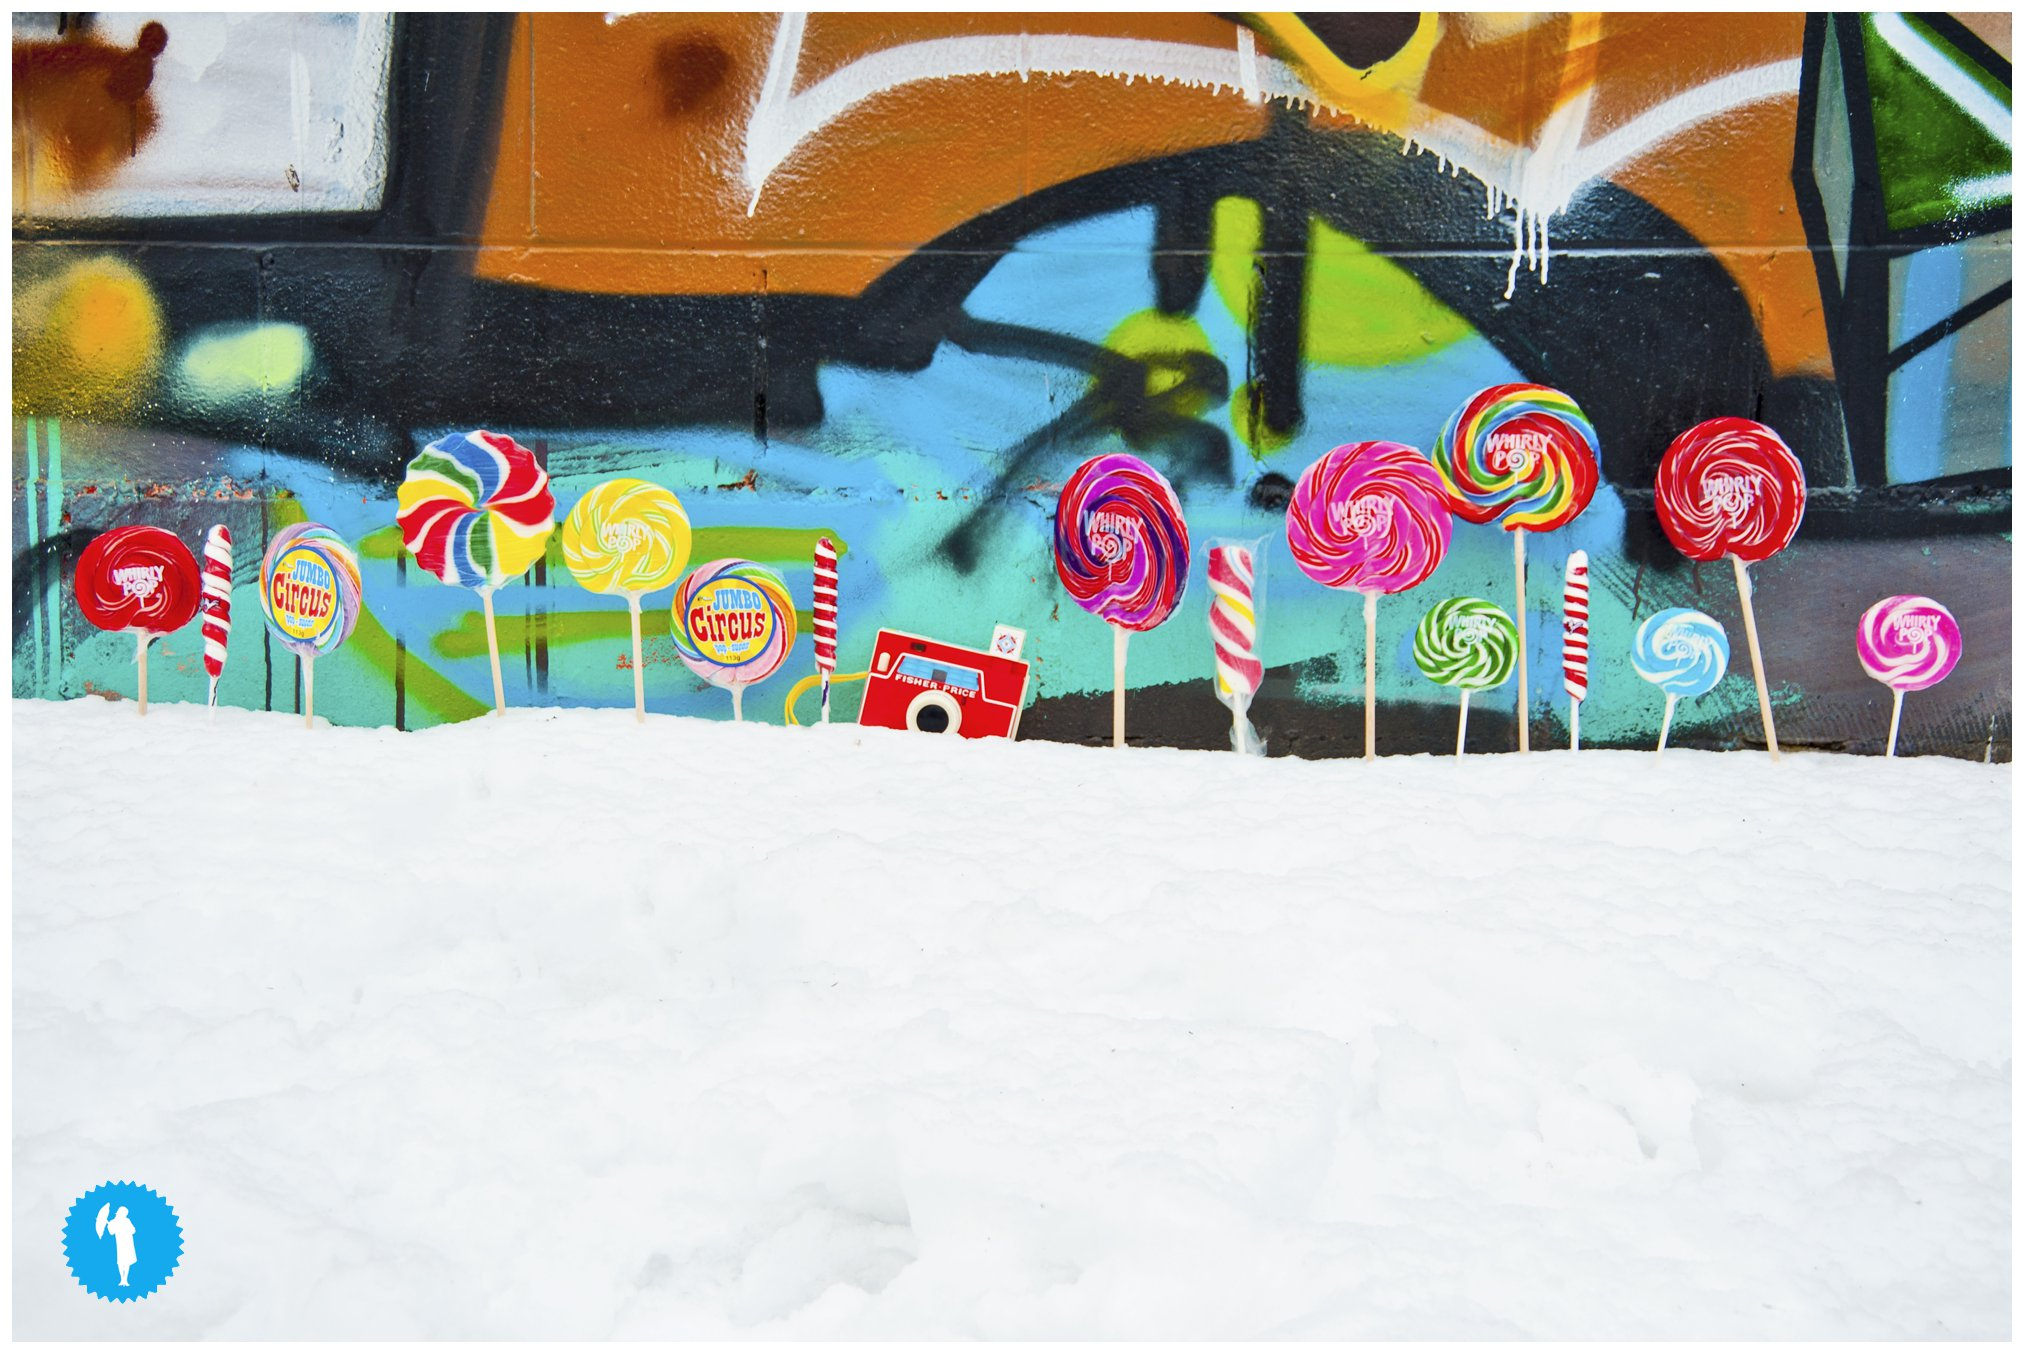 graffiti in Kitchener with lollipops